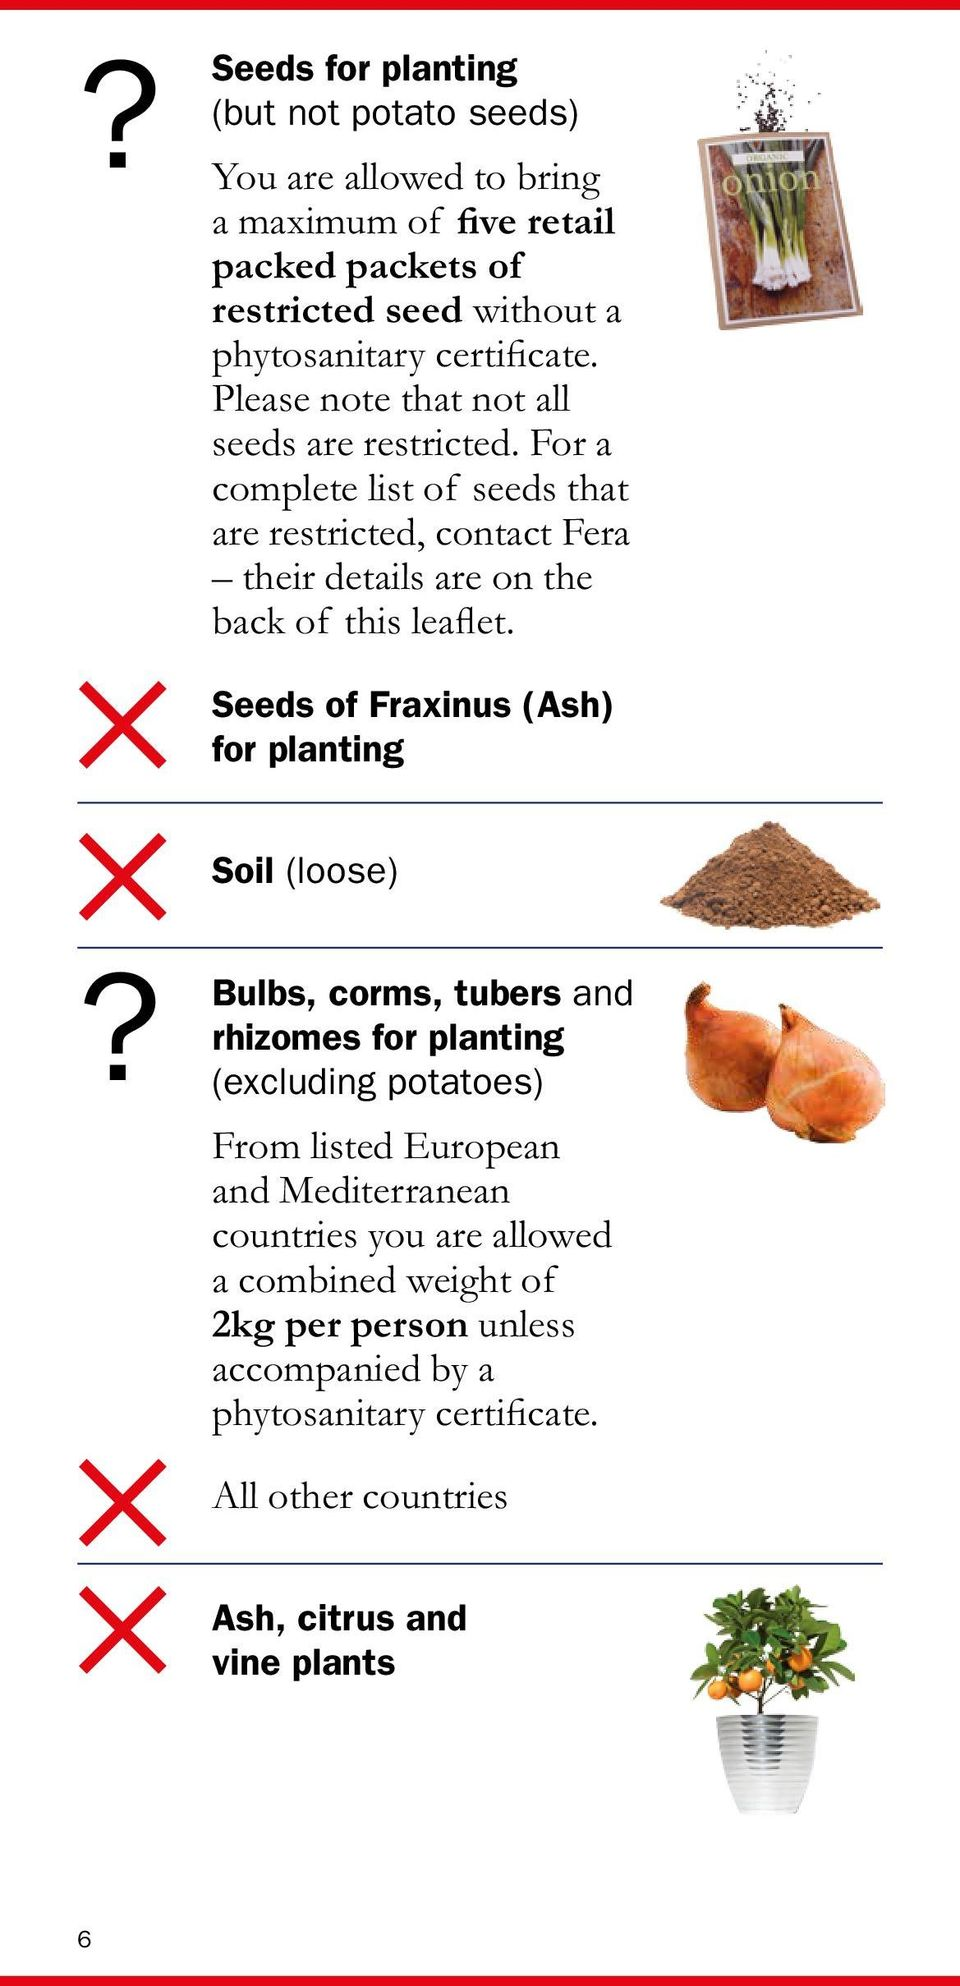 For a complete list of seeds that are restricted, contact Fera their details are on the back of this leaflet.